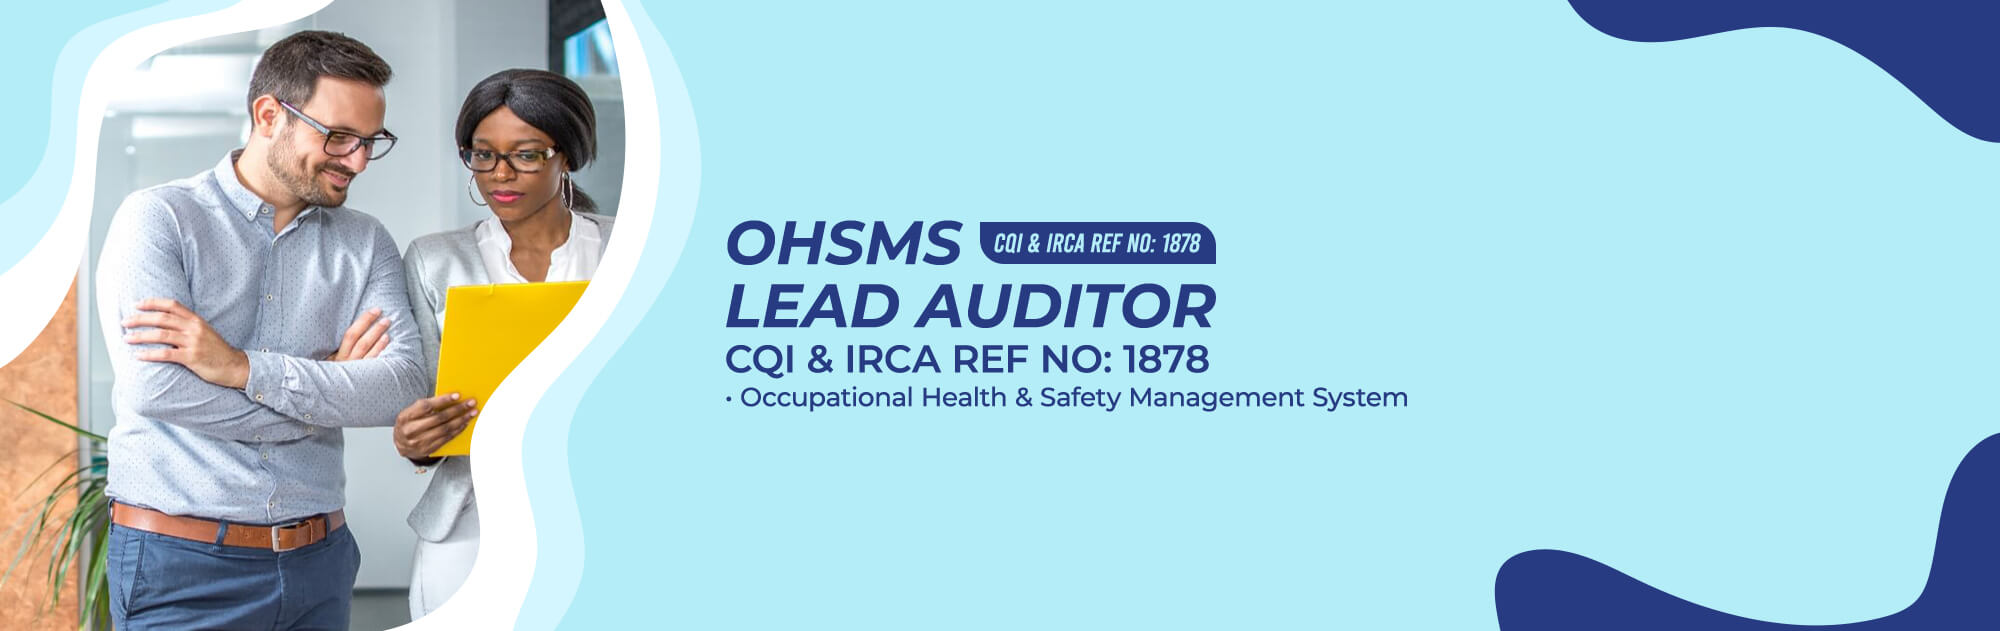 ISO 45001:2018 - CQI and IRCA Ref No. 1878 OHSMS Lead Auditor - Occupational Health and Safety Management System - 5 Days Training